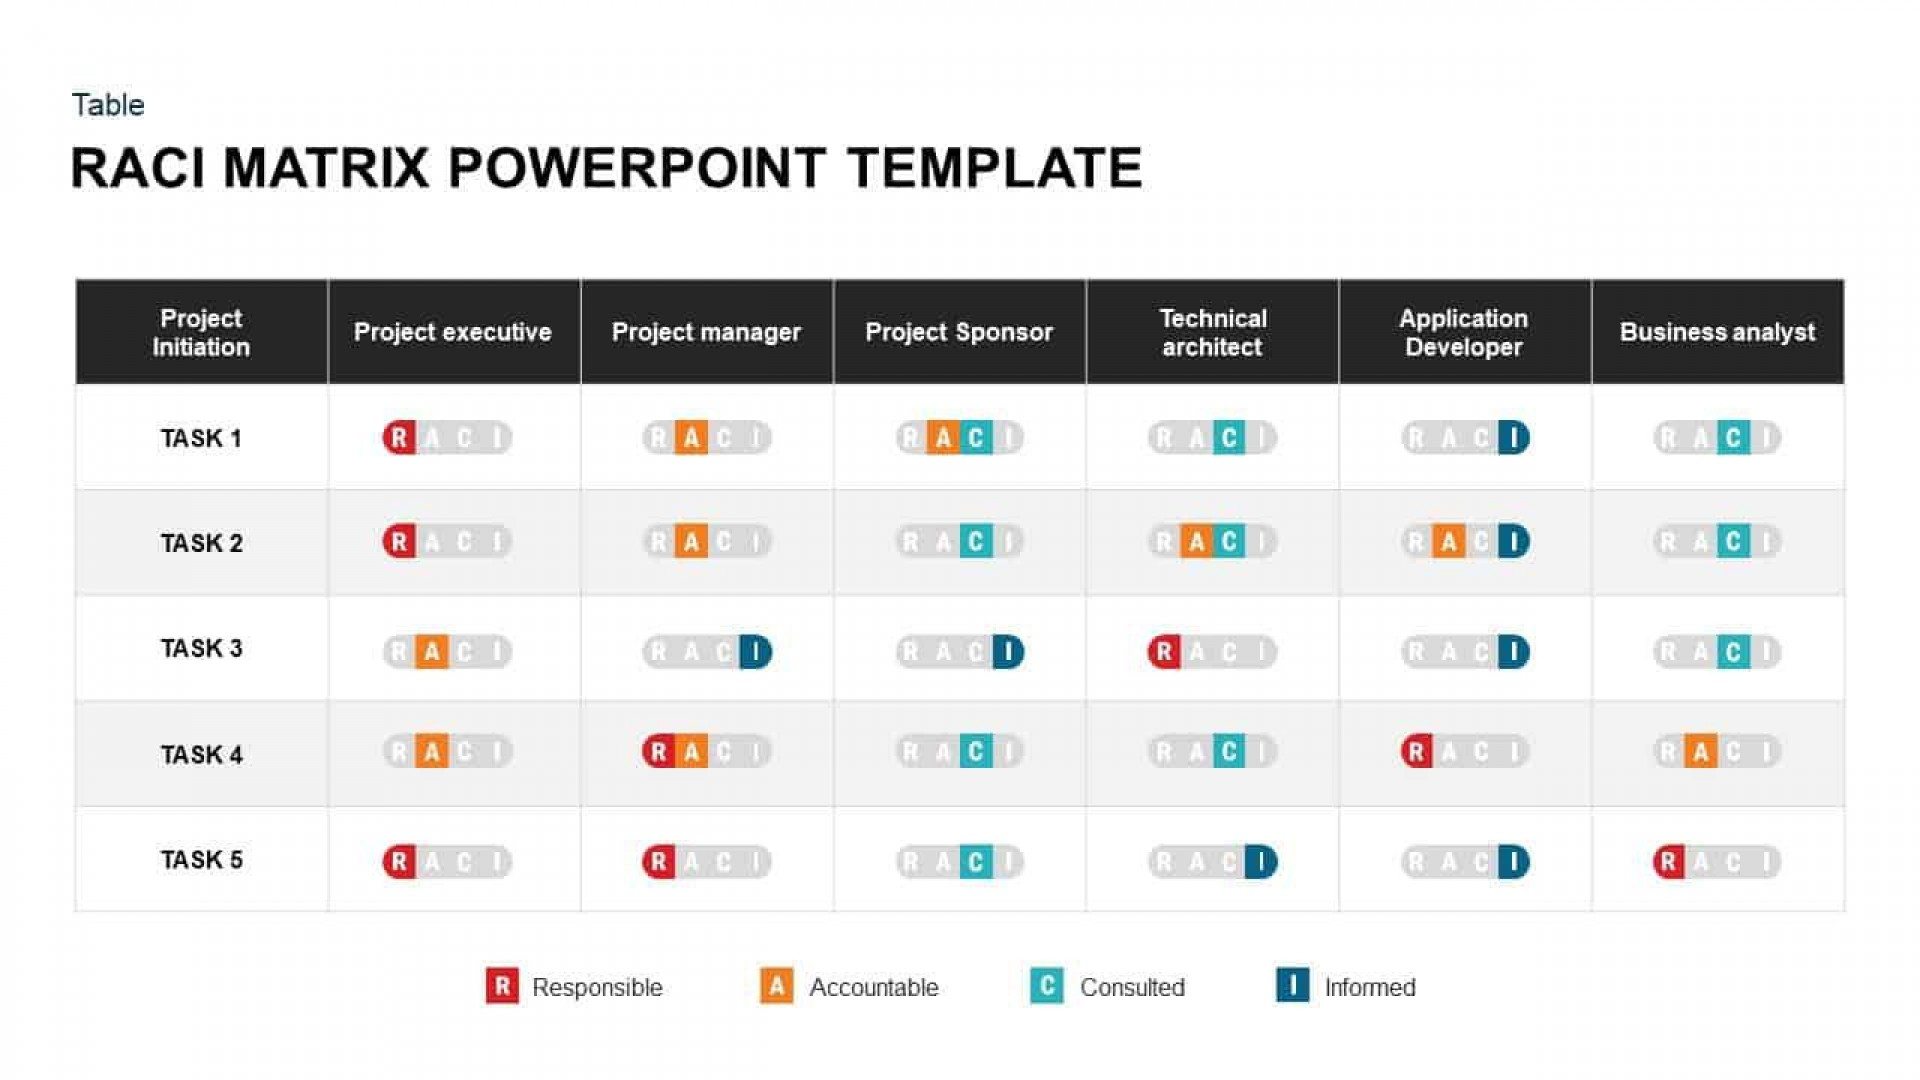 005 Stirring Role And Responsibilitie Matrix Template Powerpoint Highest Clarity 1920